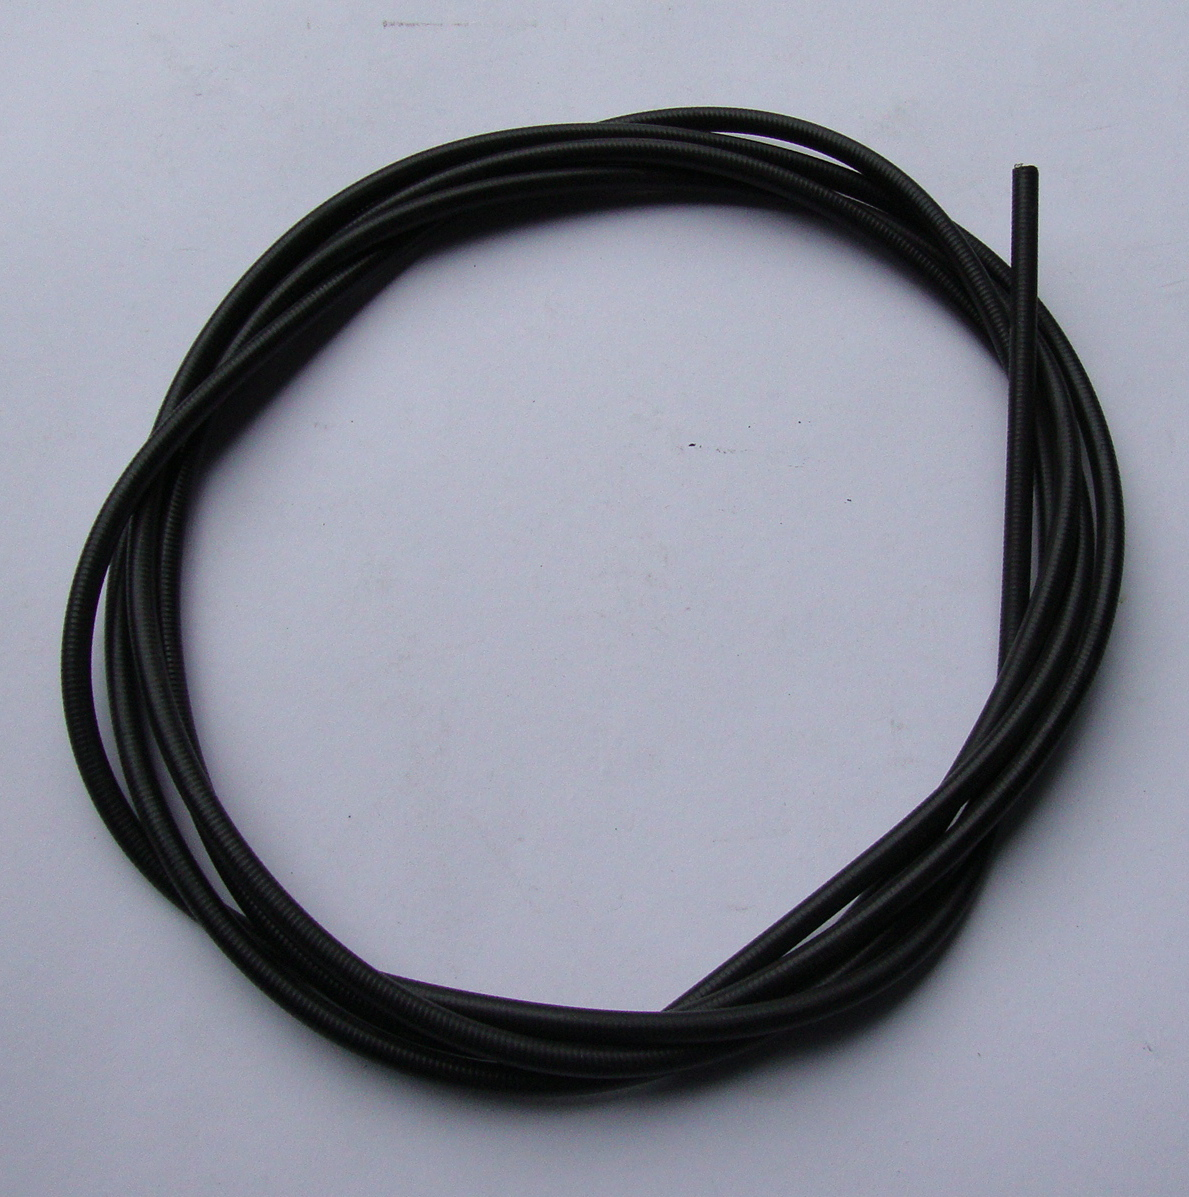 Cable sleeve, 7 mm, black